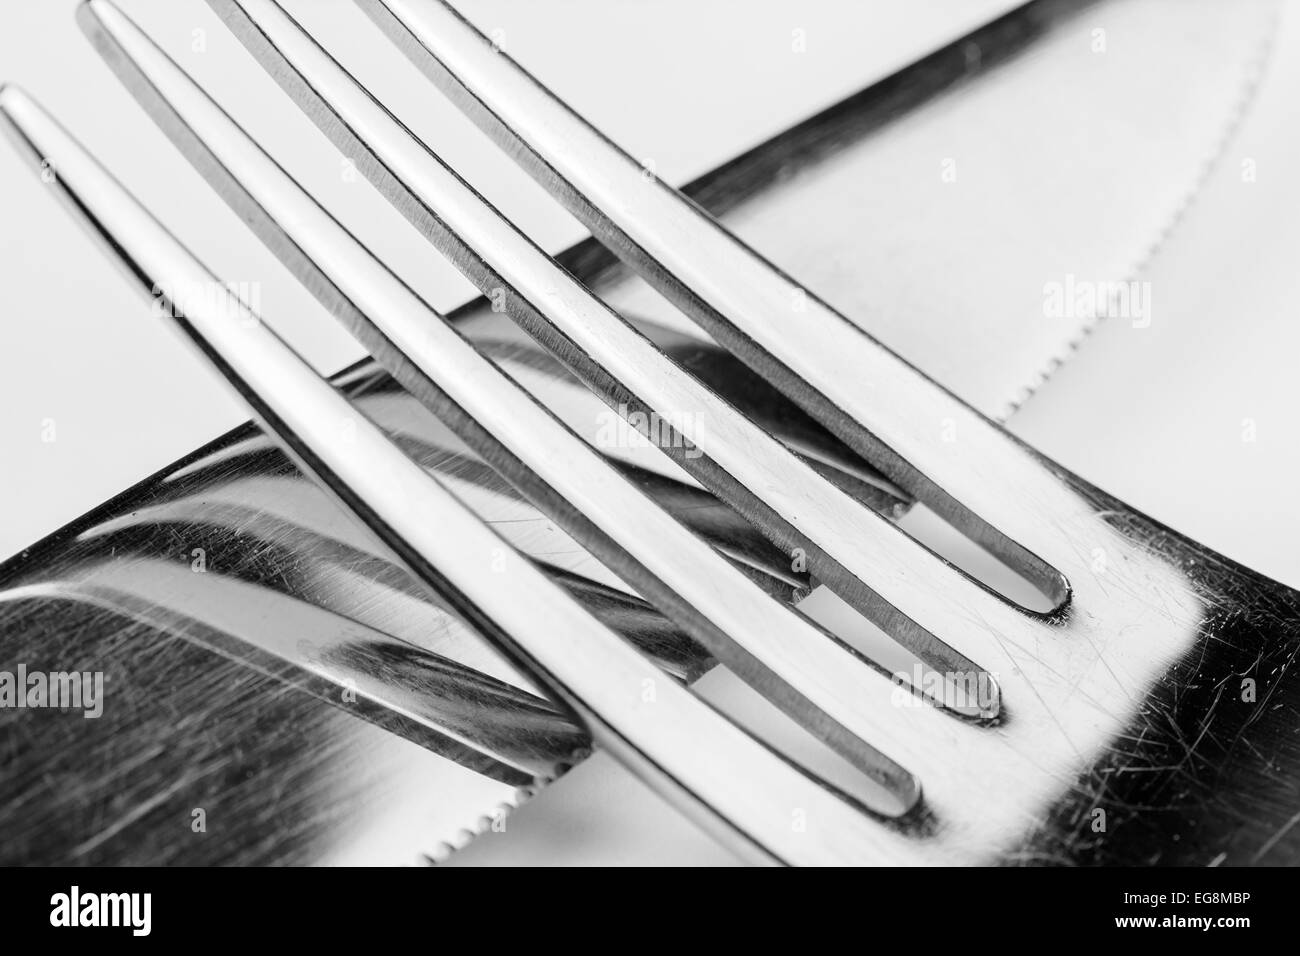 Stainless steel knife and fork with a reflection of the fork. - Stock Image